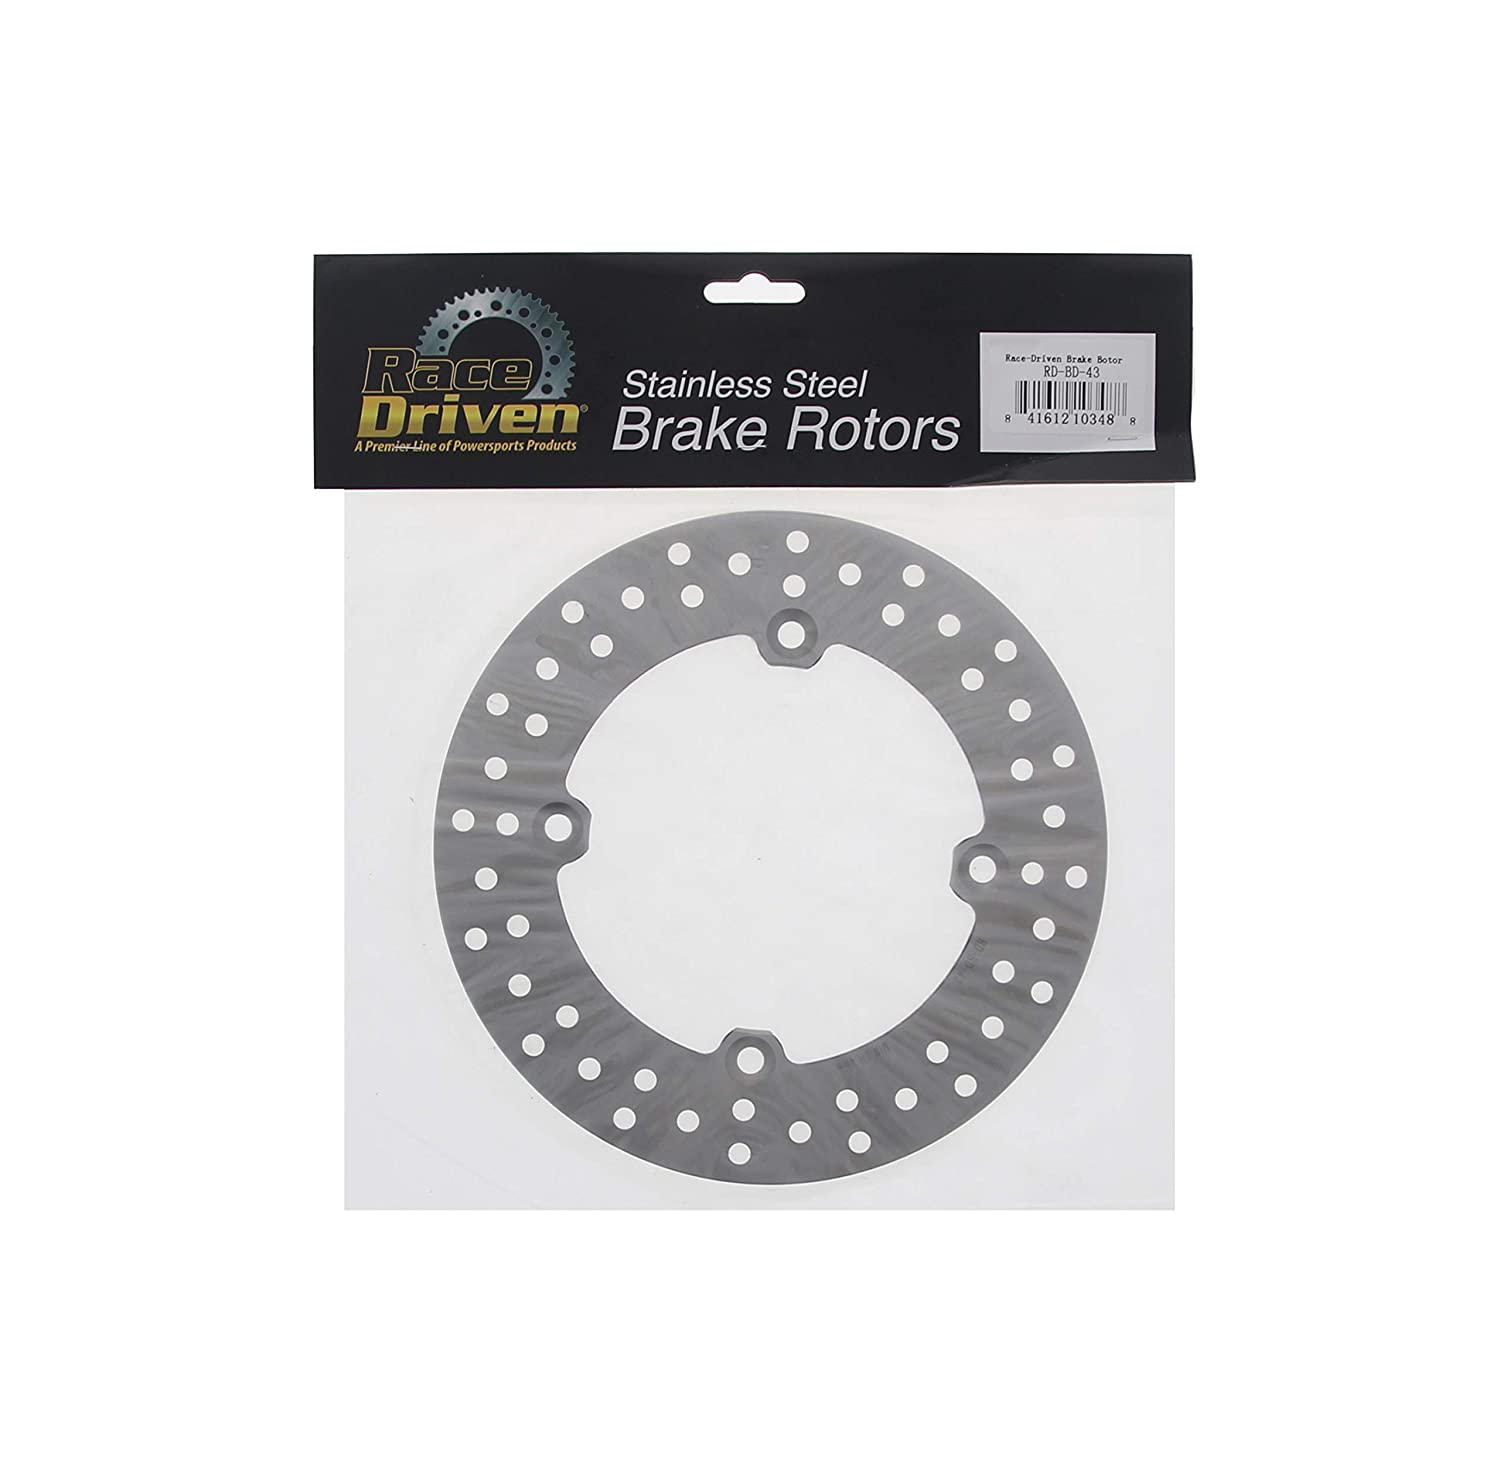 2014 fits Can-Am Outlander 1000 Front and Rear Brake Rotors and Brake Pads